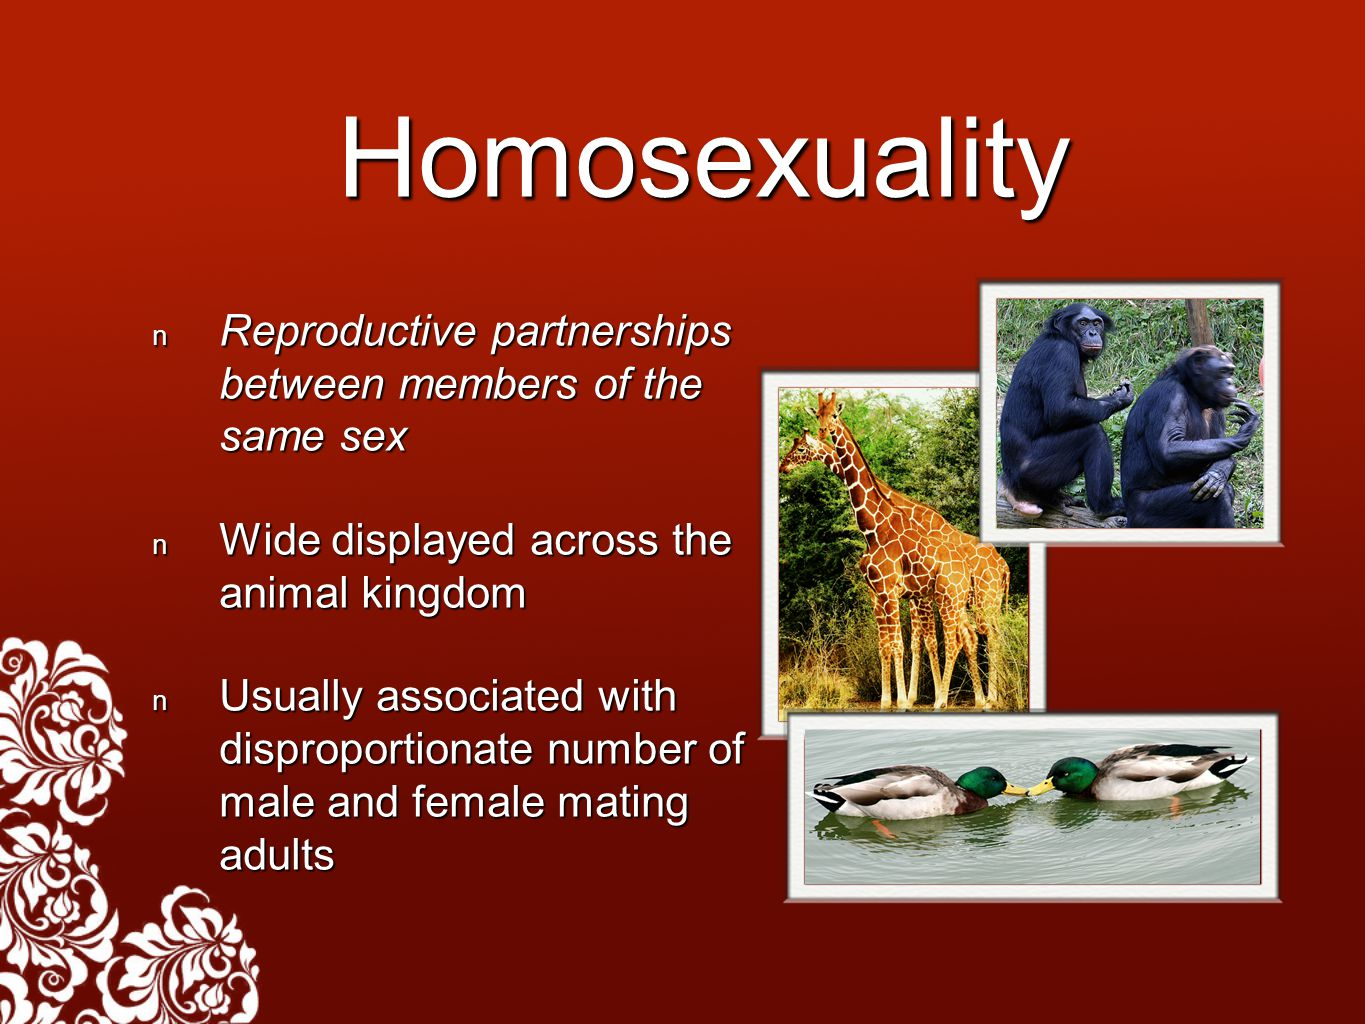 Homosexuality Reproductive partnerships between members of the same sex Reproductive partnerships between members of the same sex Wide displayed across the animal kingdom Wide displayed across the animal kingdom Usually associated with disproportionate number of male and female mating adults Usually associated with disproportionate number of male and female mating adults